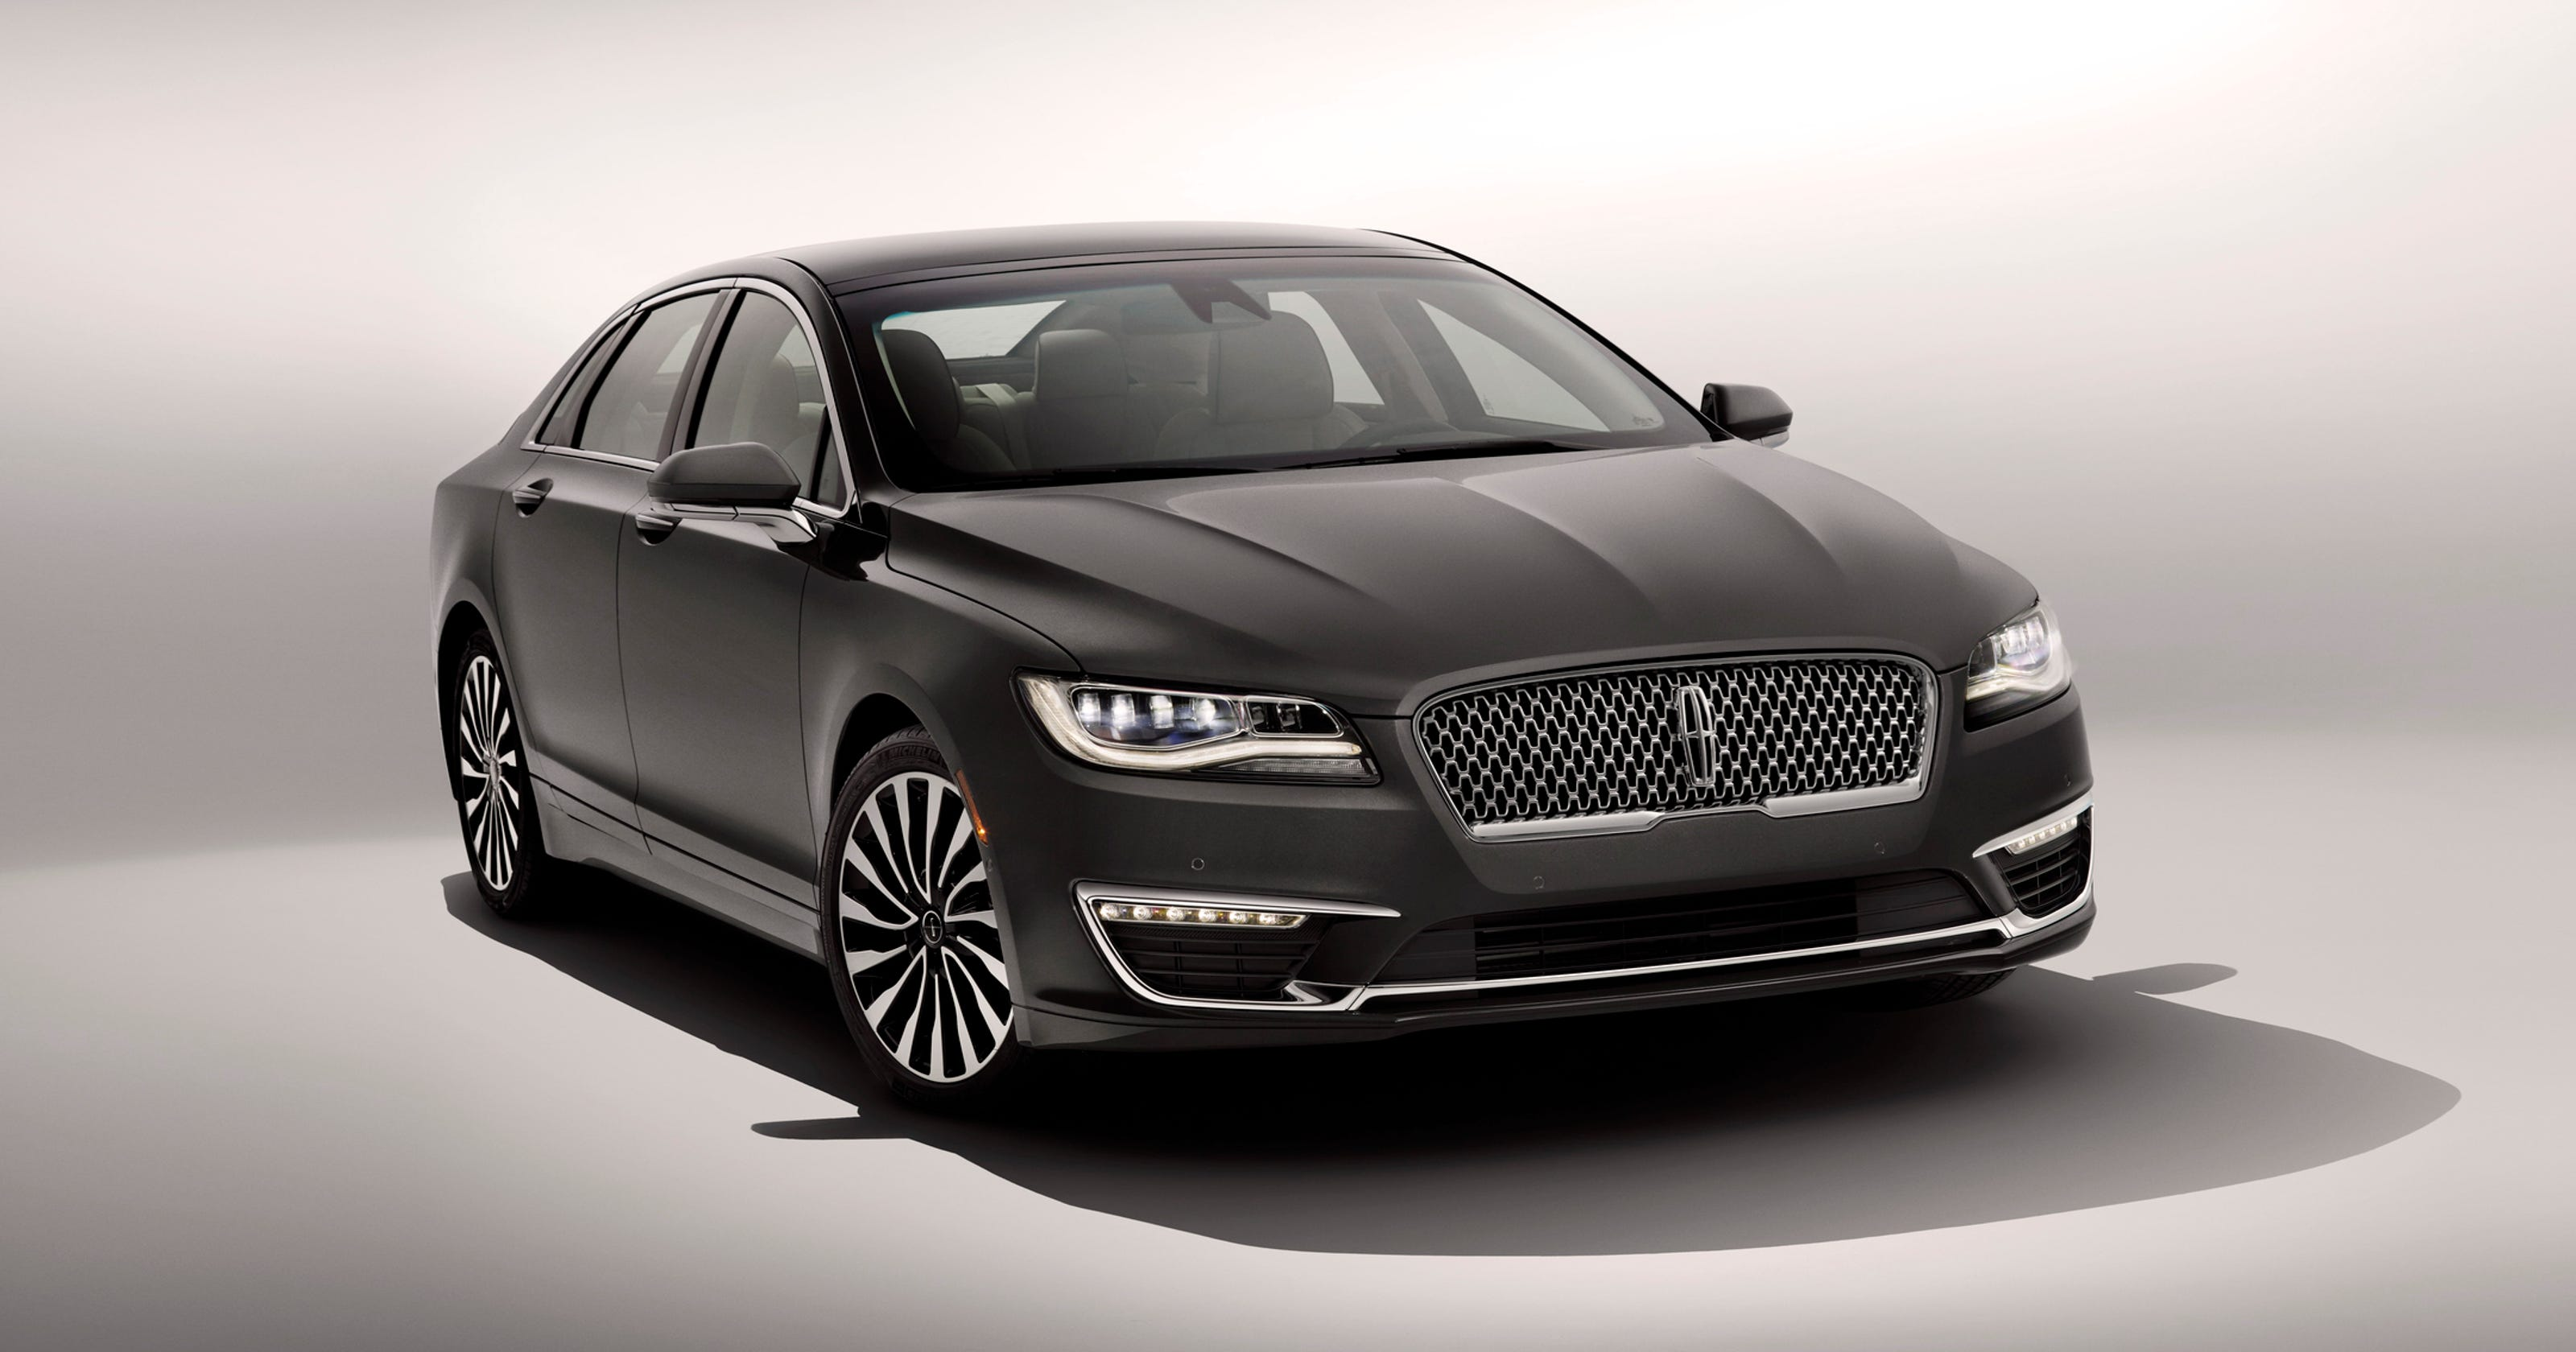 2017 Lincoln Mkz At L A Show New Face For Luxury Brand